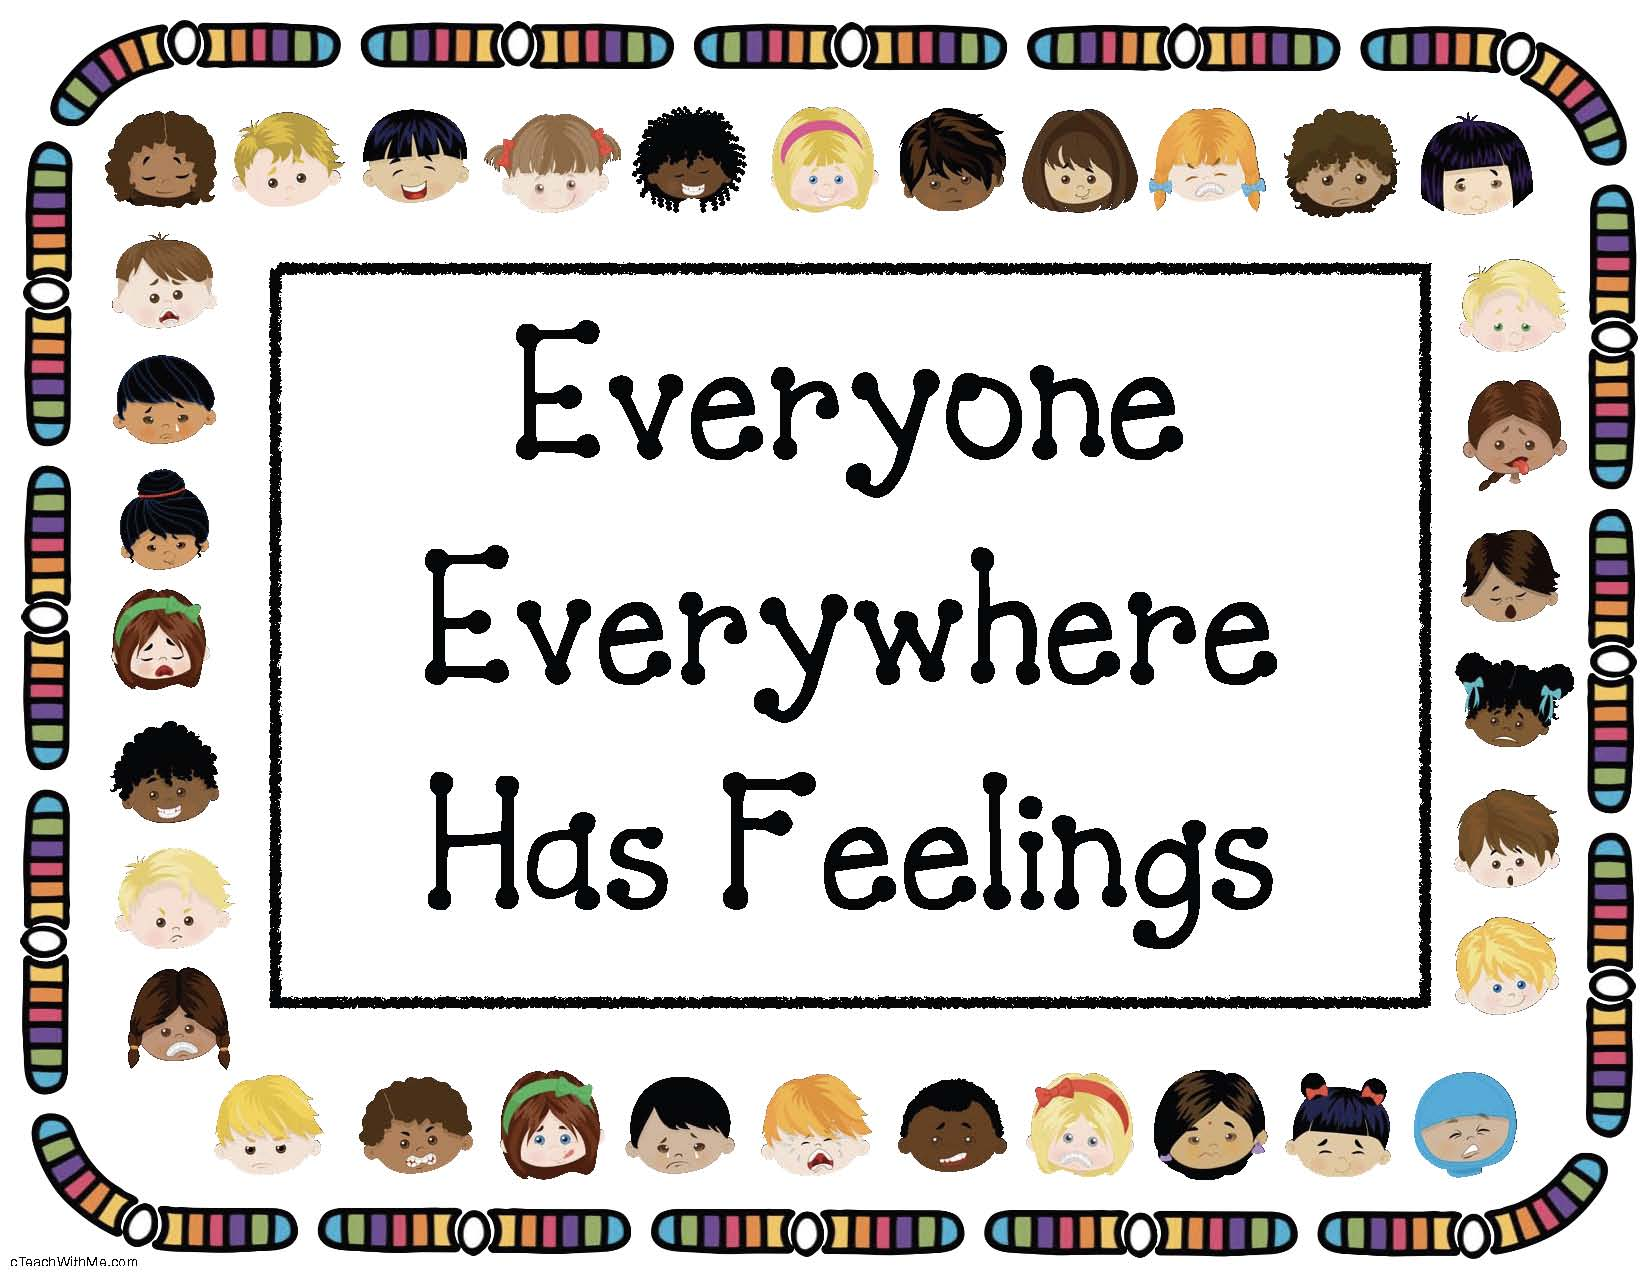 everyone everywhere has feeliings free poster, feelings activities, feelings crafts, feelings posters